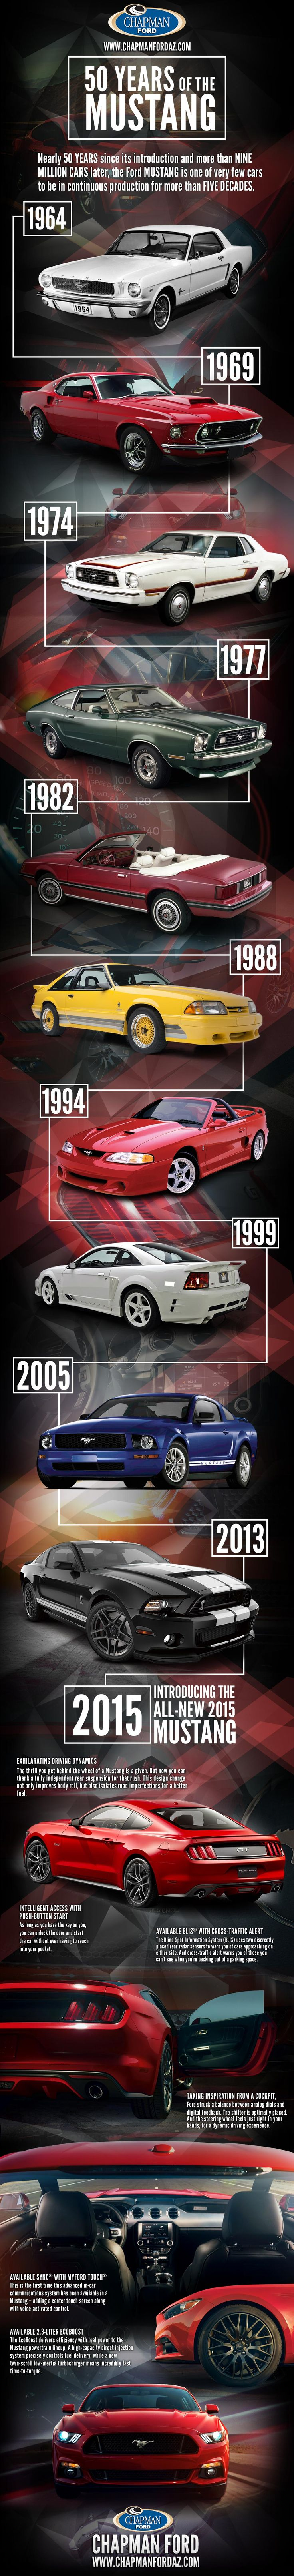 Ford tourneo courier pictures to pin on pinterest - 50 Years Of The Ford Mustang Infographic Is One Of The Best Infographics Created In The Category Check Out 50 Years Of The Ford Mustang Now